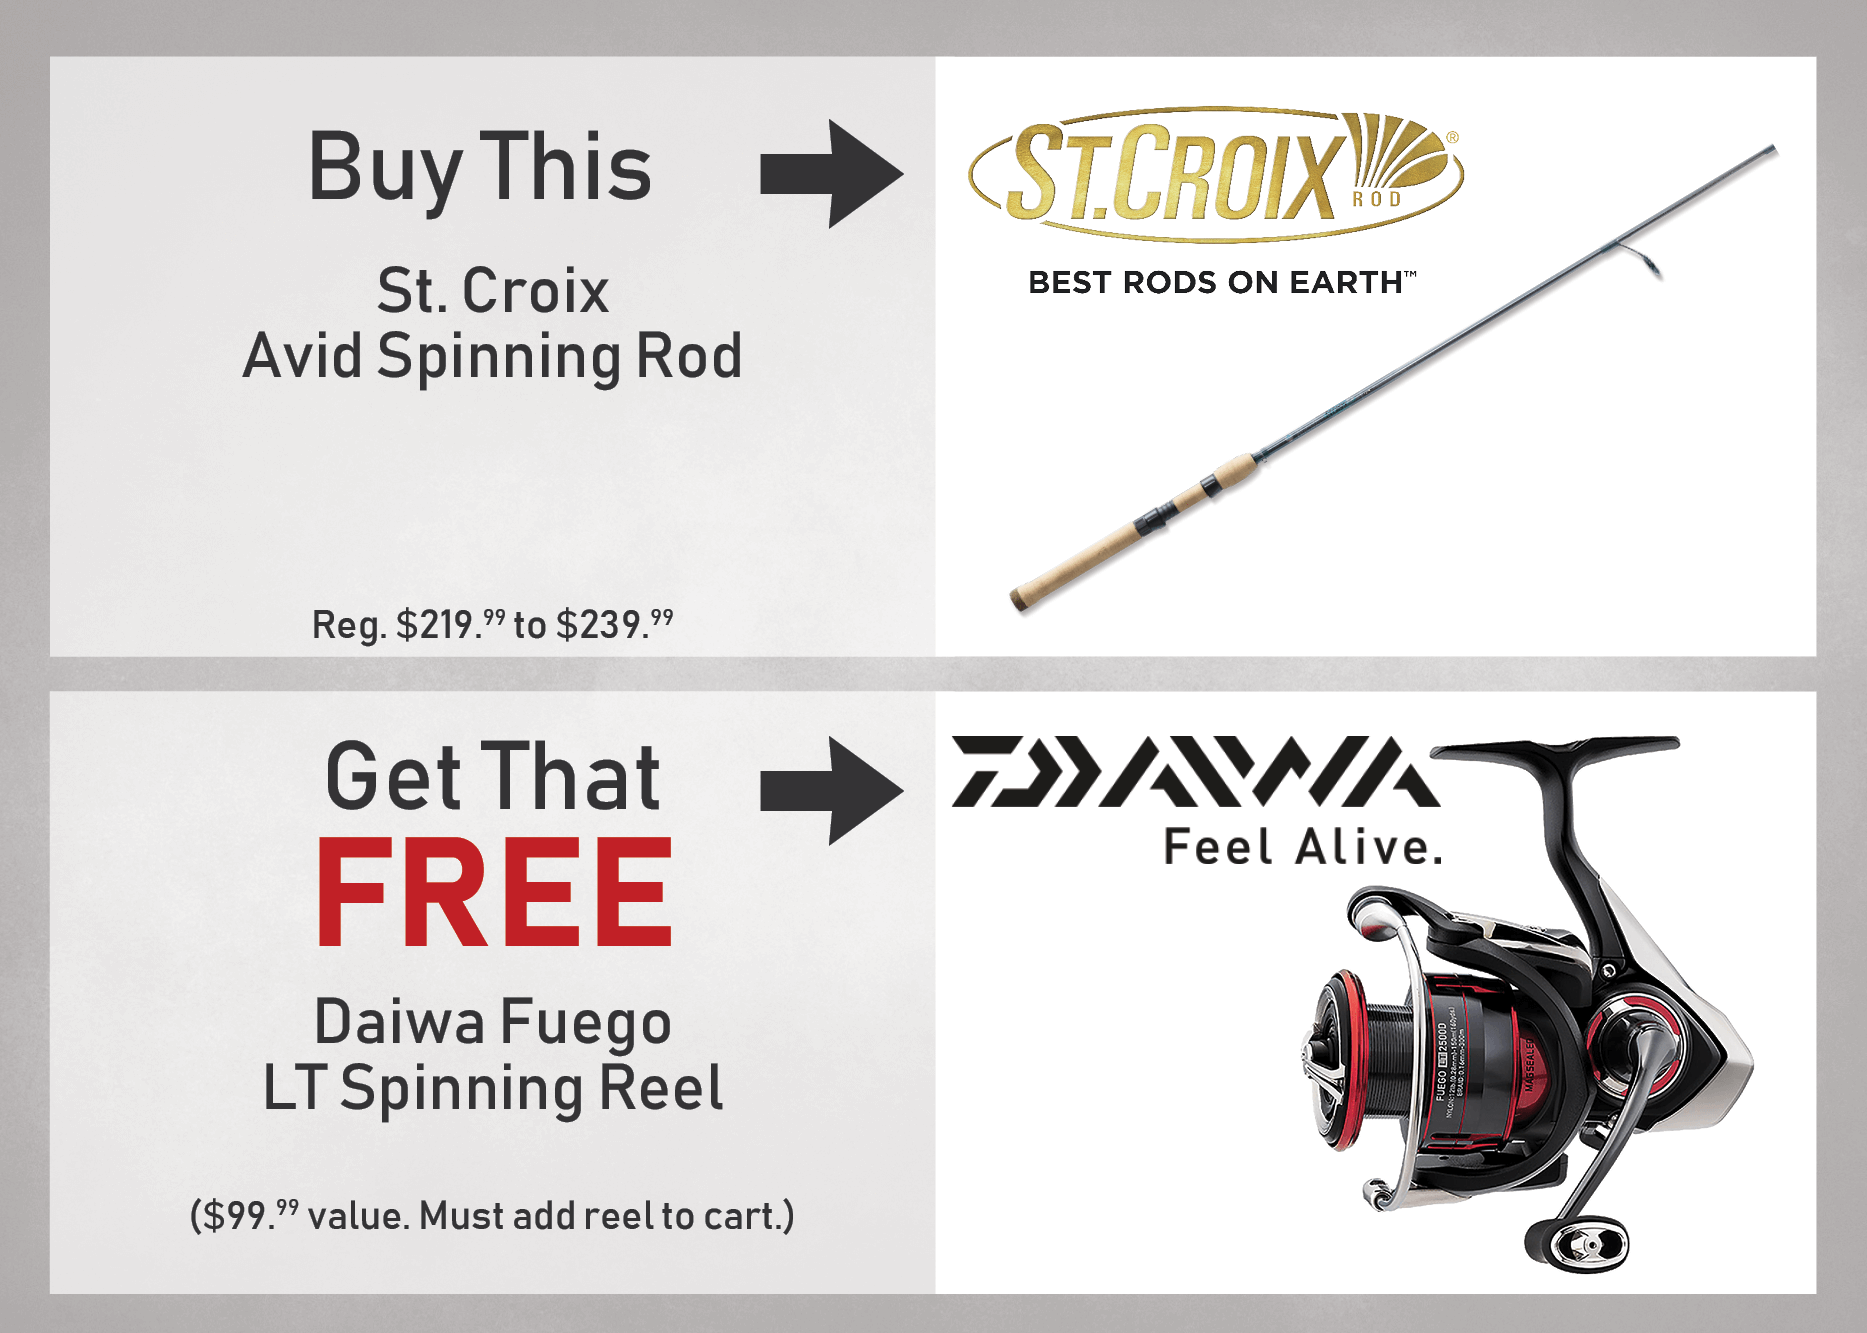 BUY a St. Croix Avid Spinning Rod, GET a Daiwa Fuego LT Spinning Reel FREE!